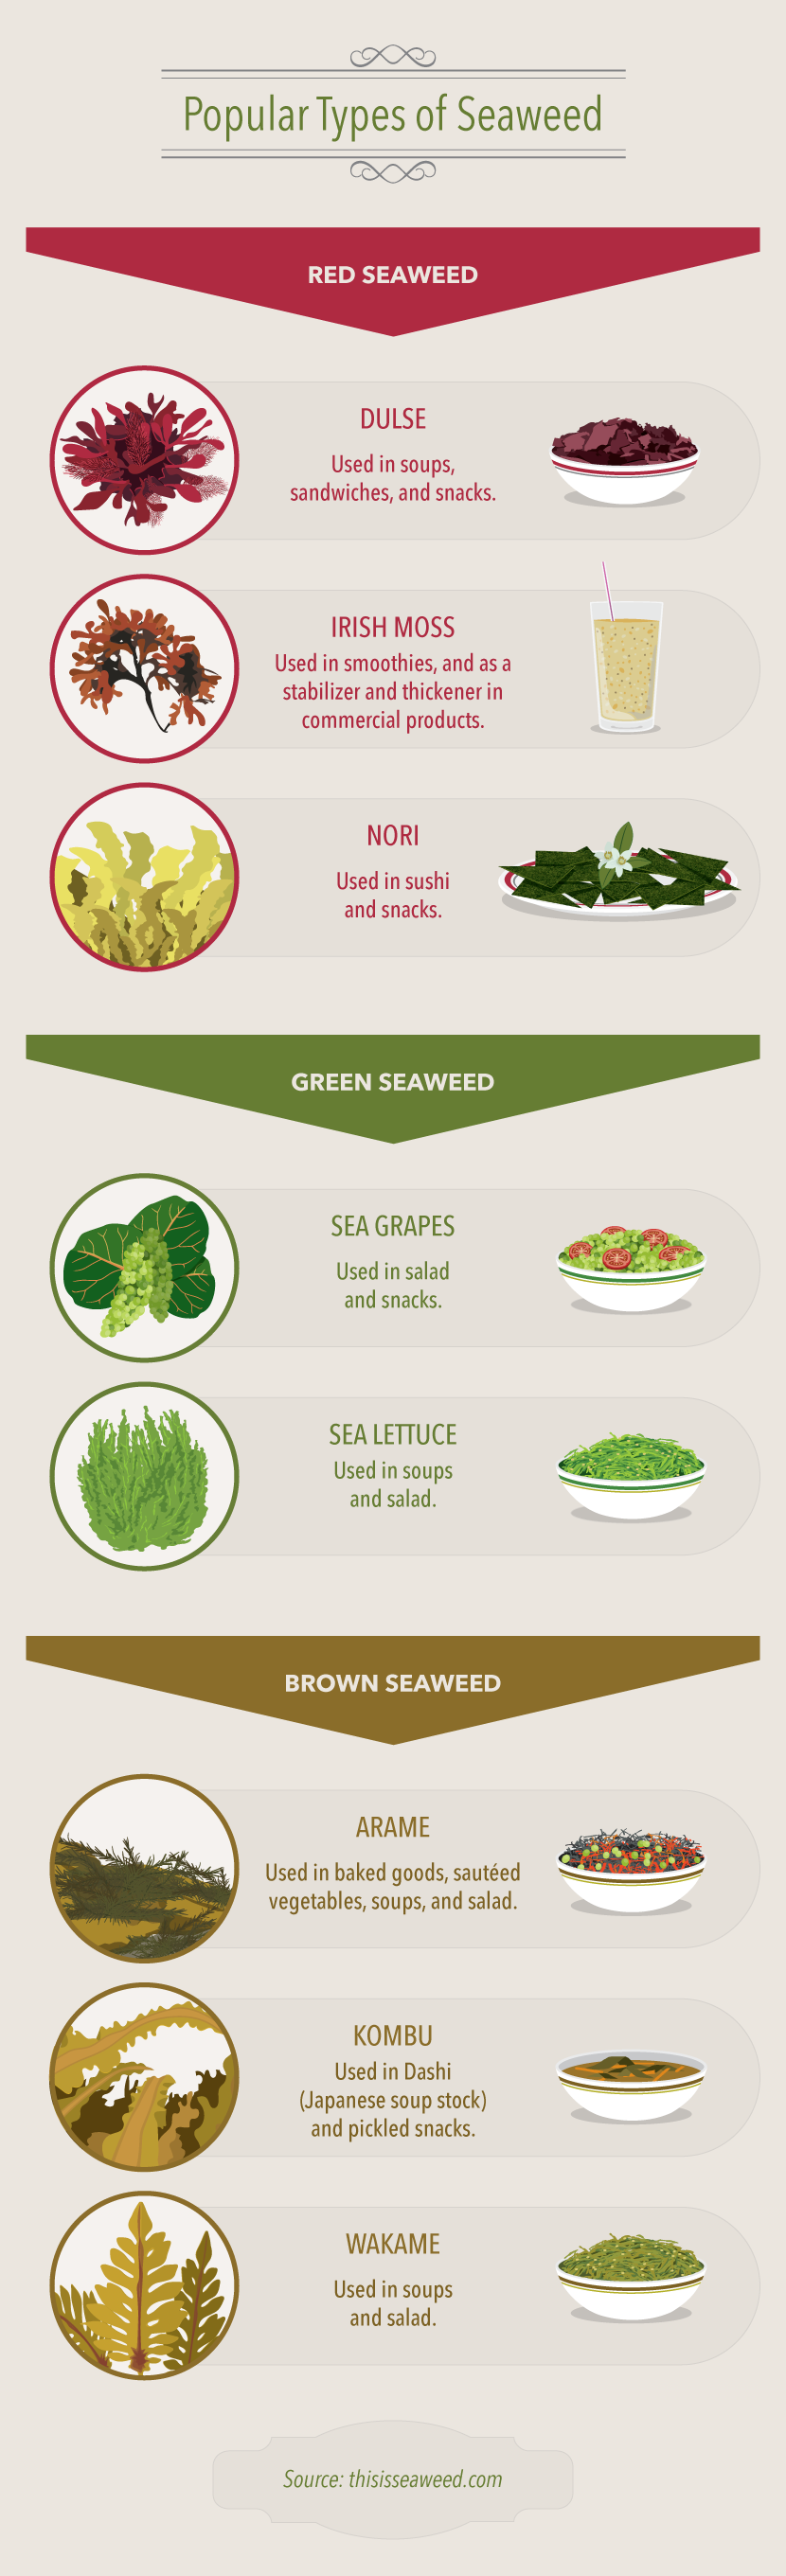 Popular Seaweed Types - A Guide to Eating Seaweed